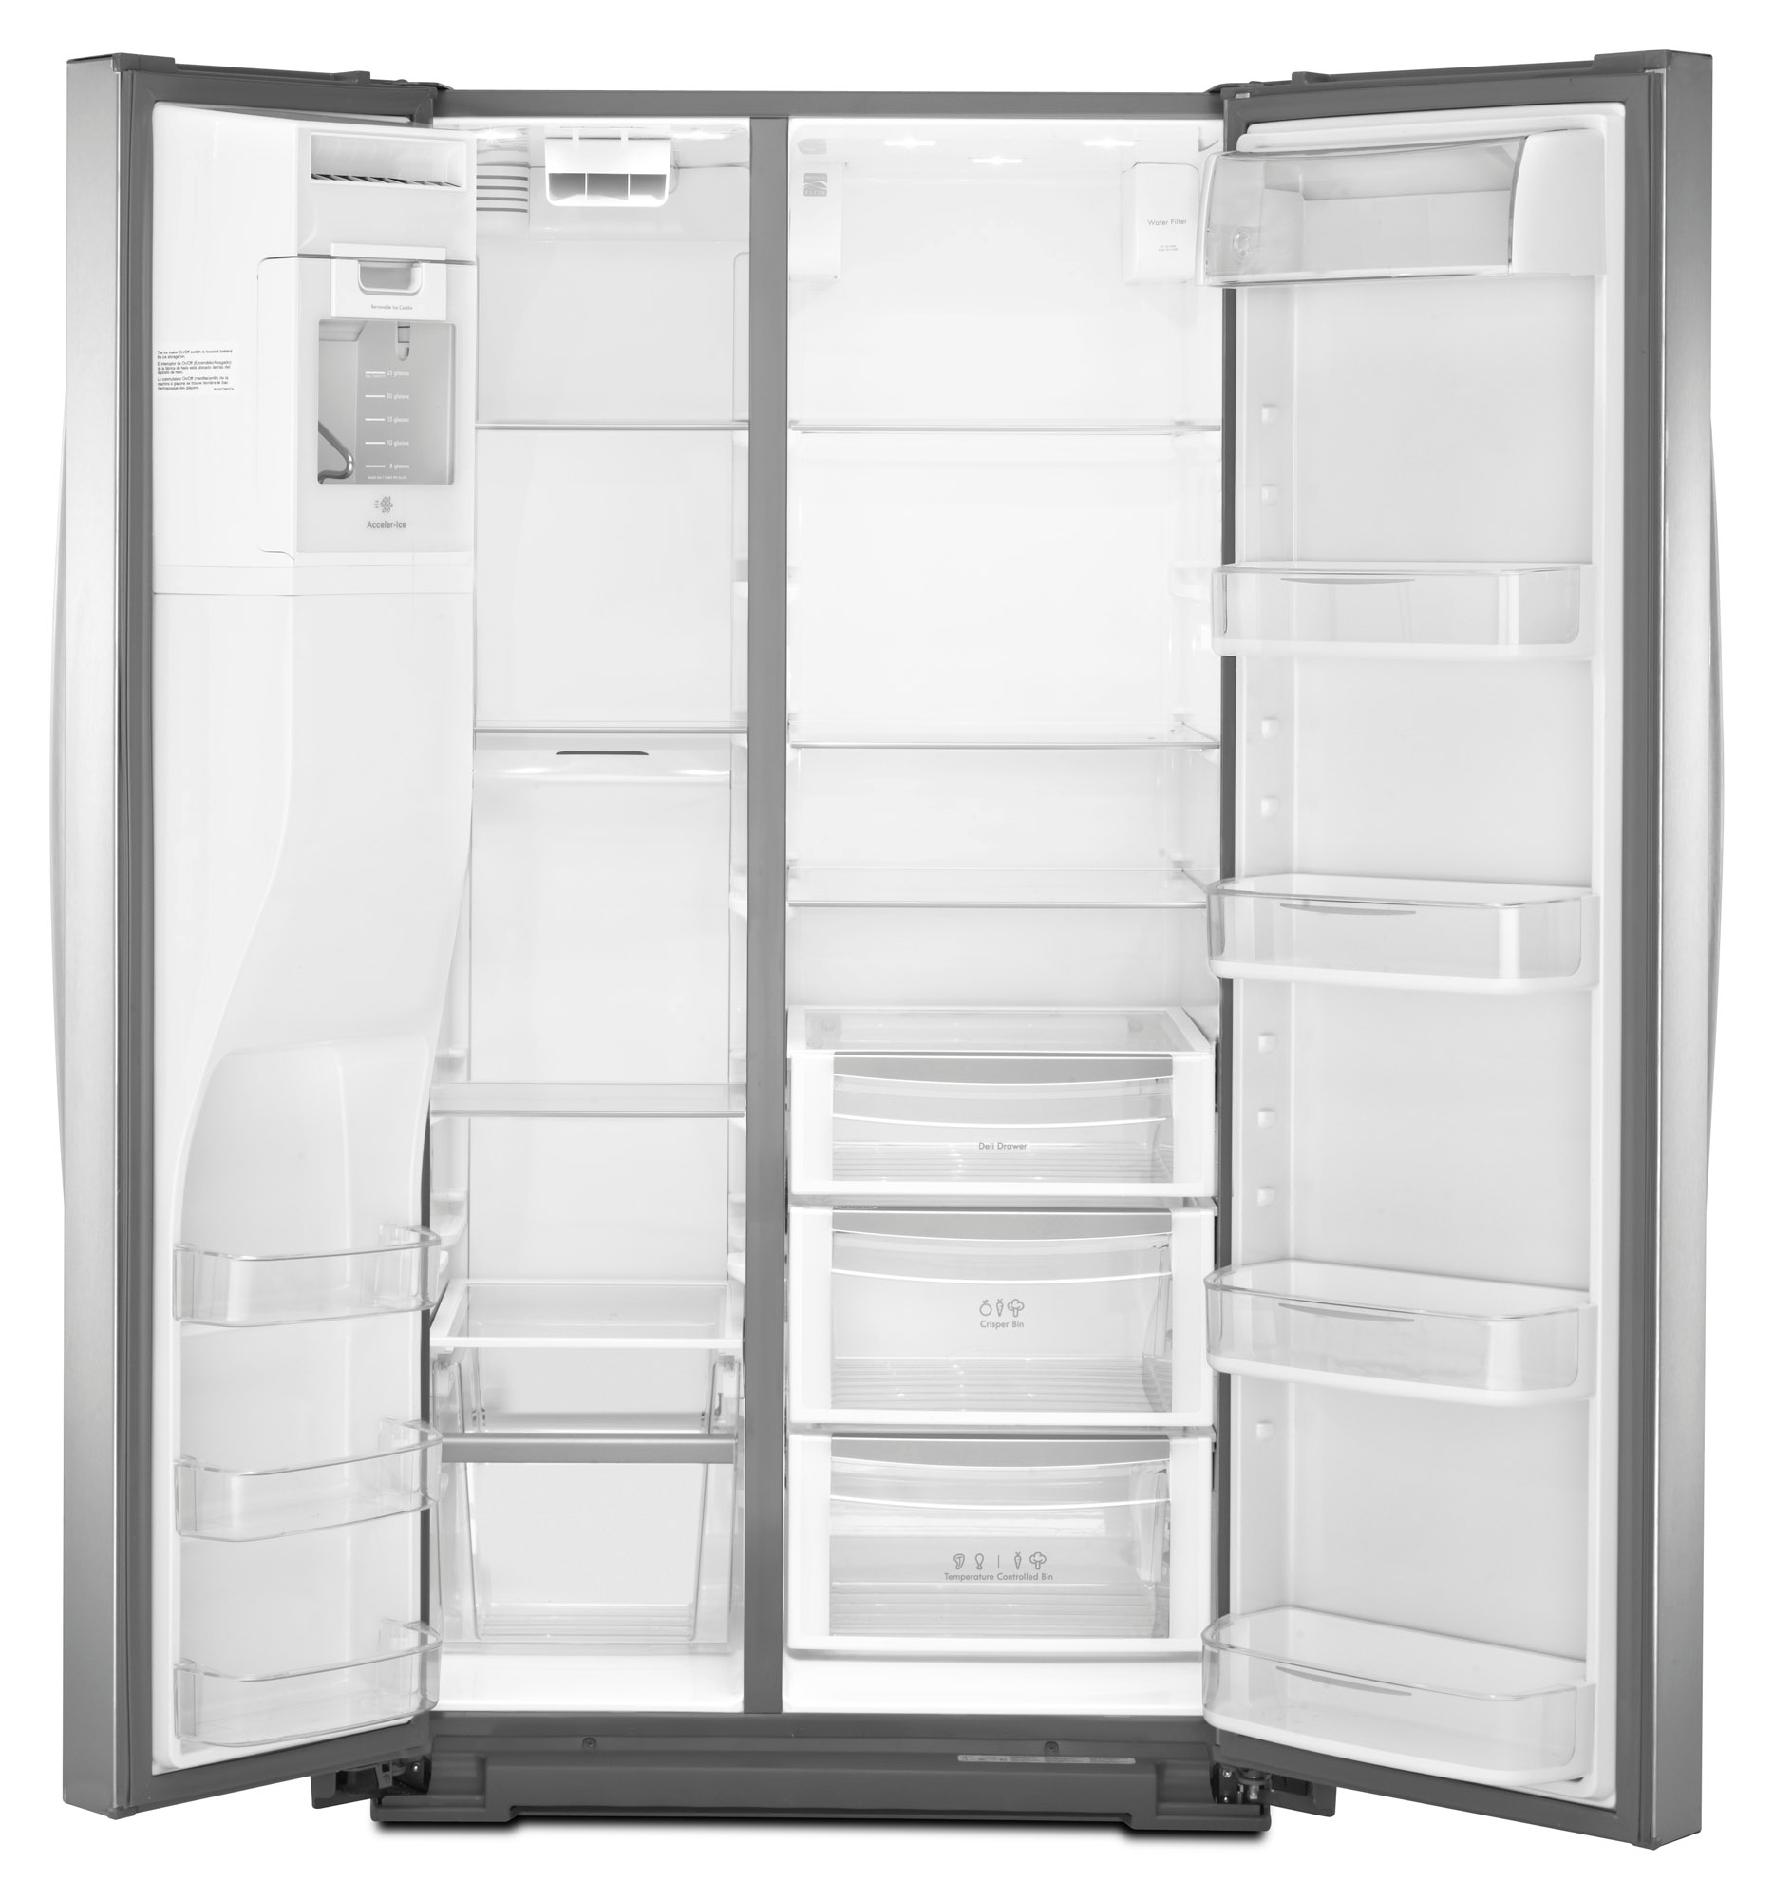 Kenmore Elite 24.5 cu. ft. Counter-Depth Side-by-Side Refrigerator - Stainless Steel